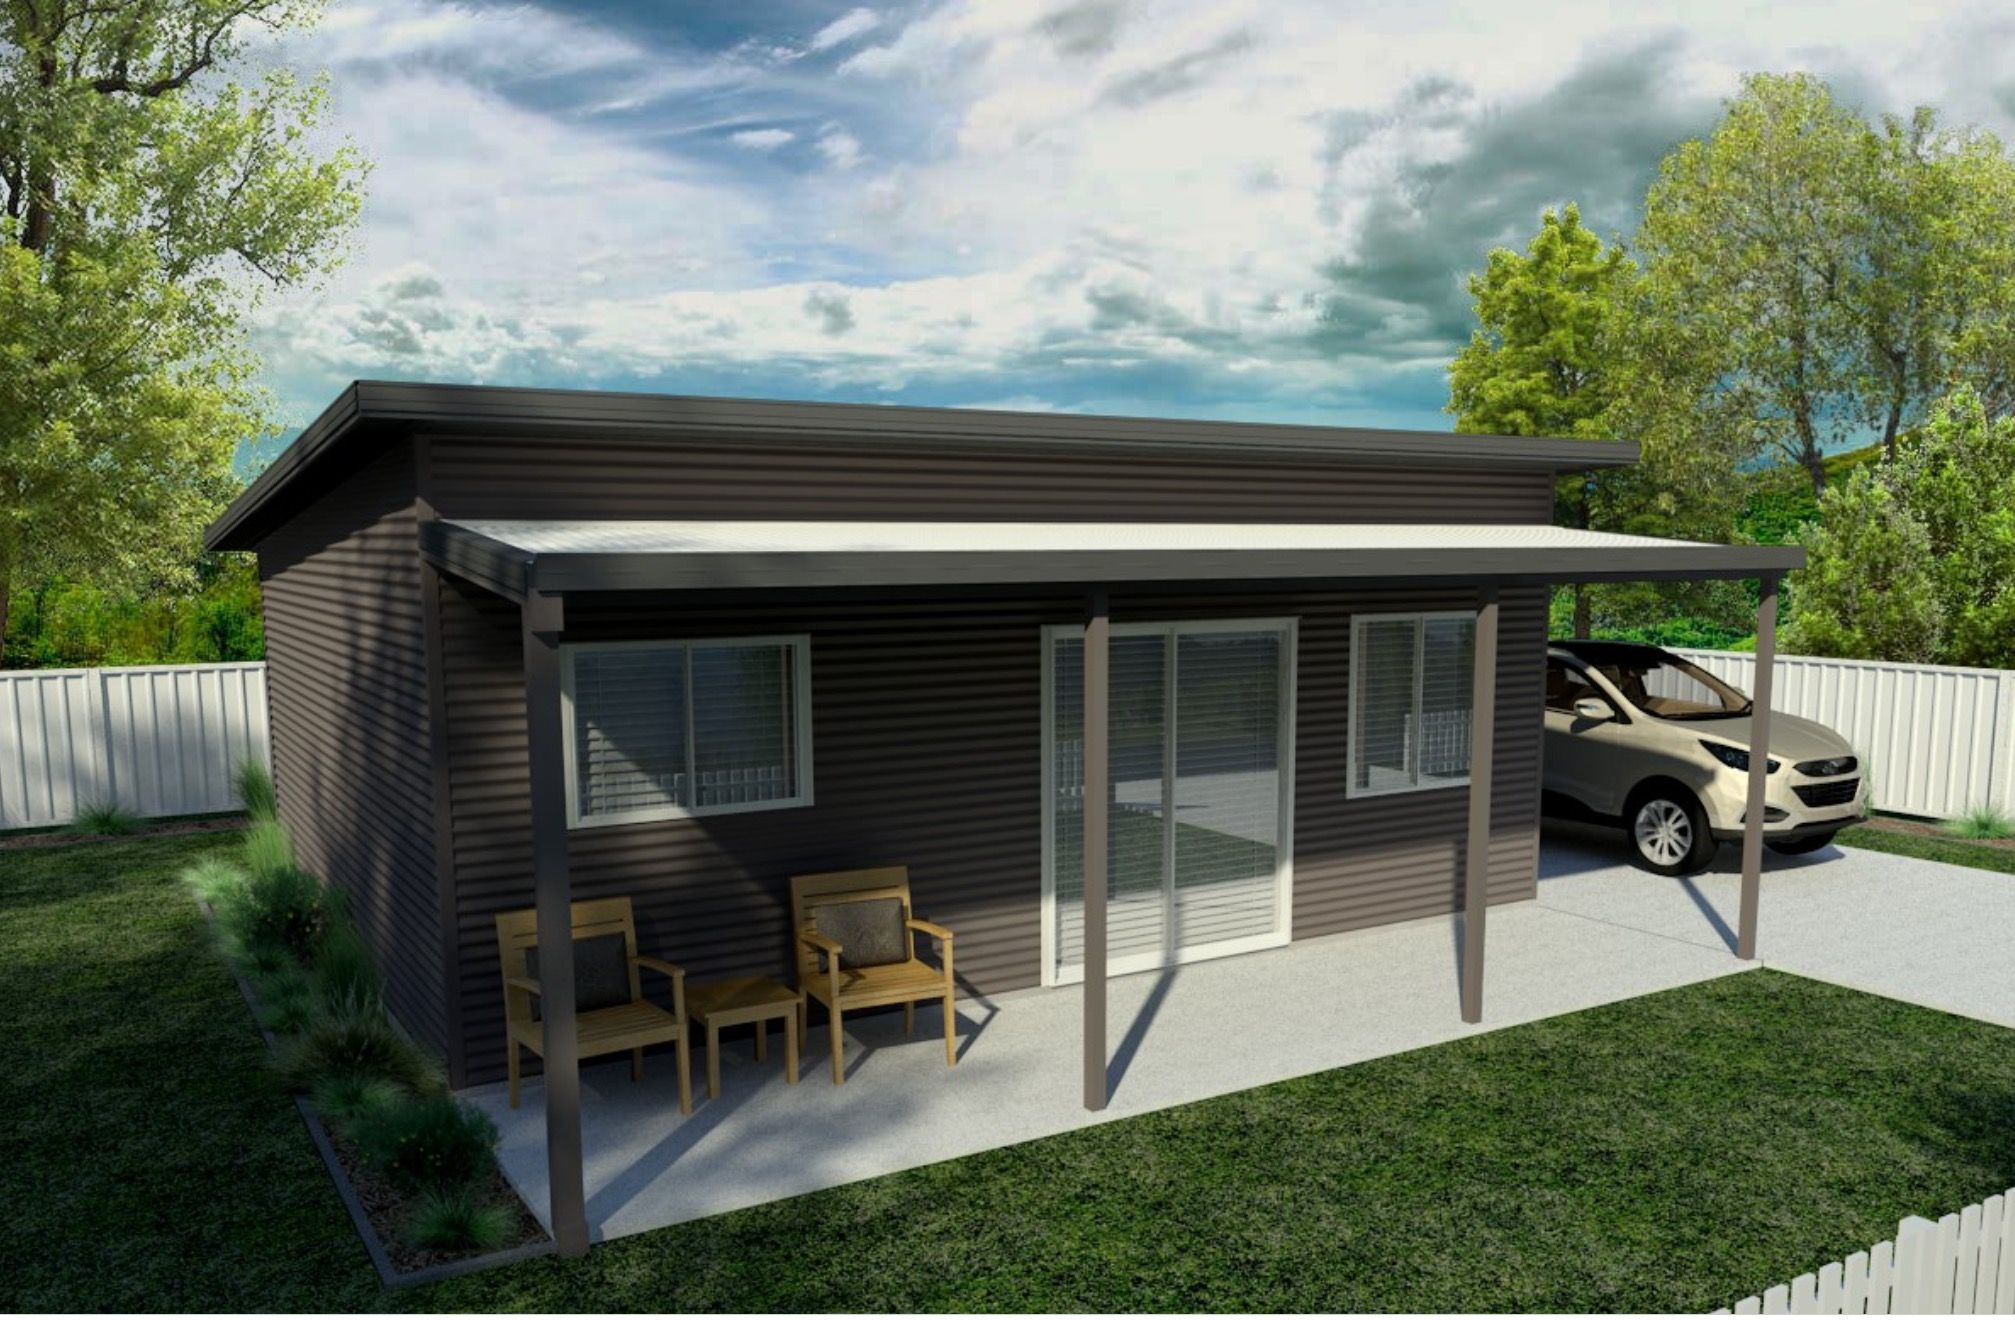 Our Ascent design featuring a contemporary skillion roof